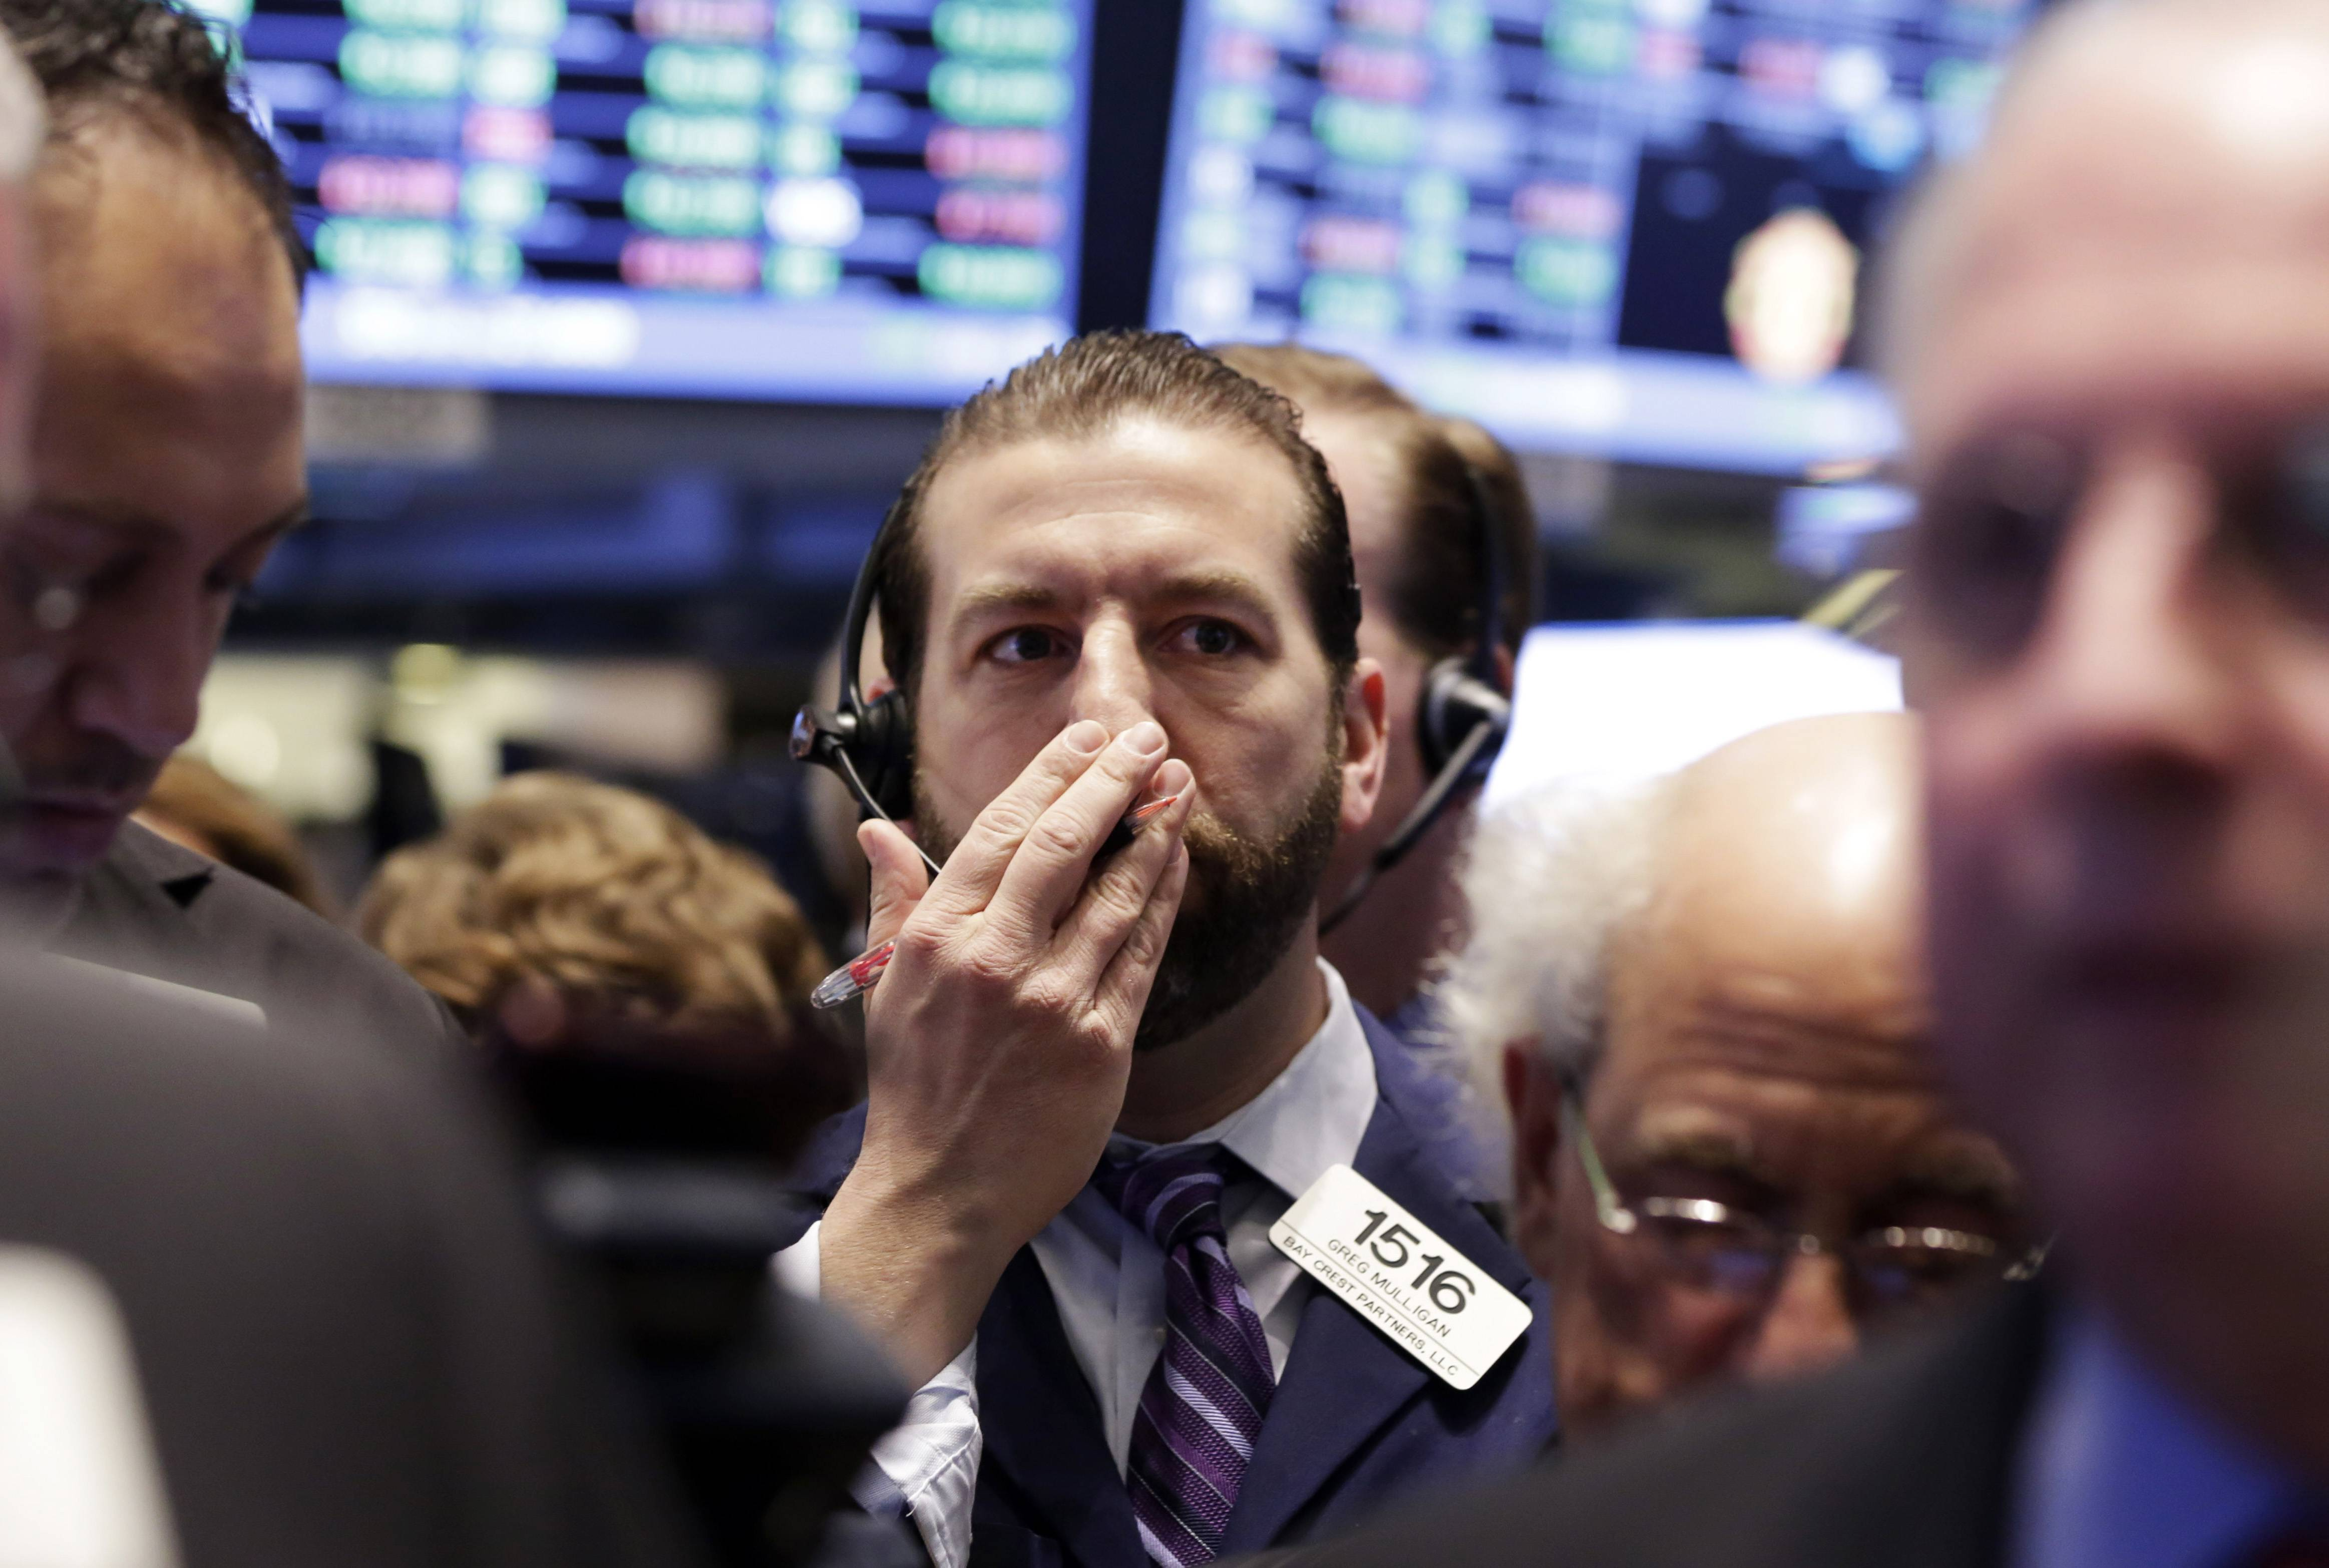 Stocks rose Tuesday, with the Nasdaq 100 Index rebounding from its worst three-day drop since 2011, as technology shares from Google to Facebook rallied.